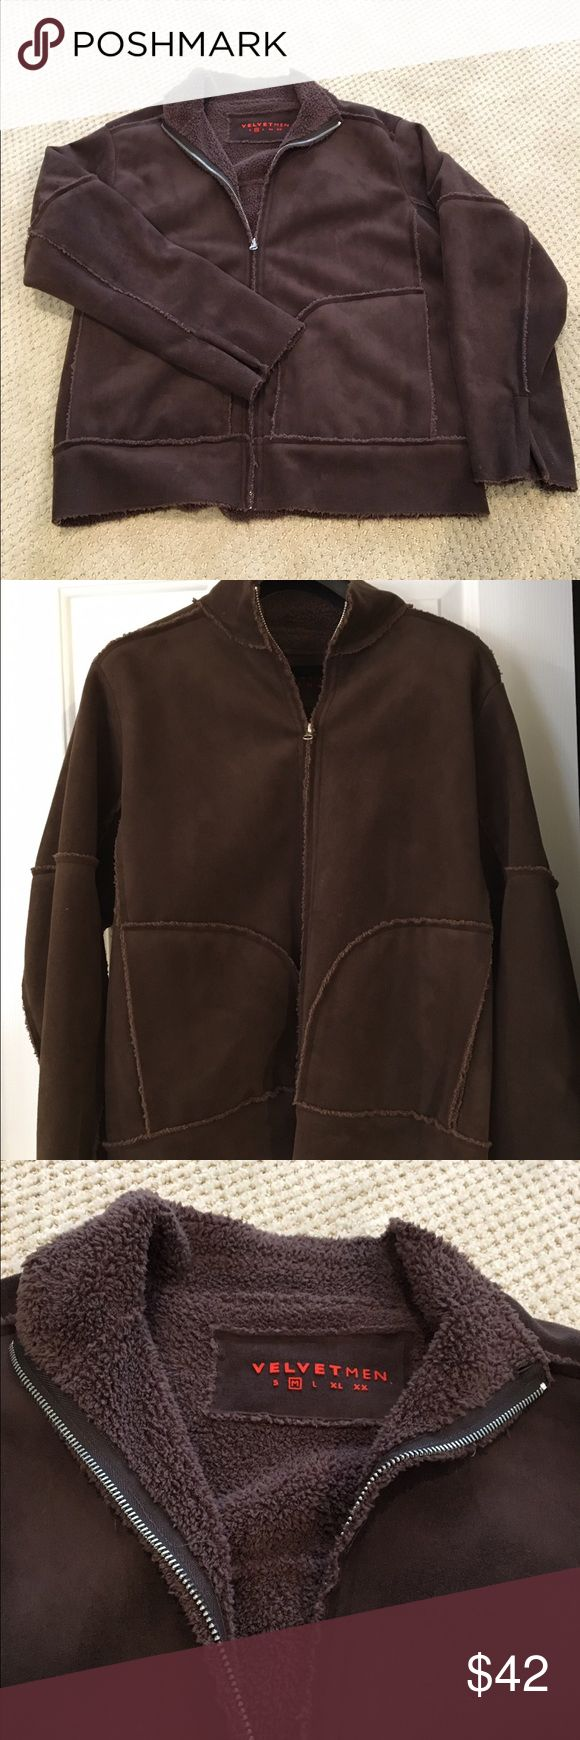 Men's Velvet Faux Shearling Jacket SO soft! Excellent condition - worn 3x. Smoke free home. No flaws! Velvet Jackets & Coats